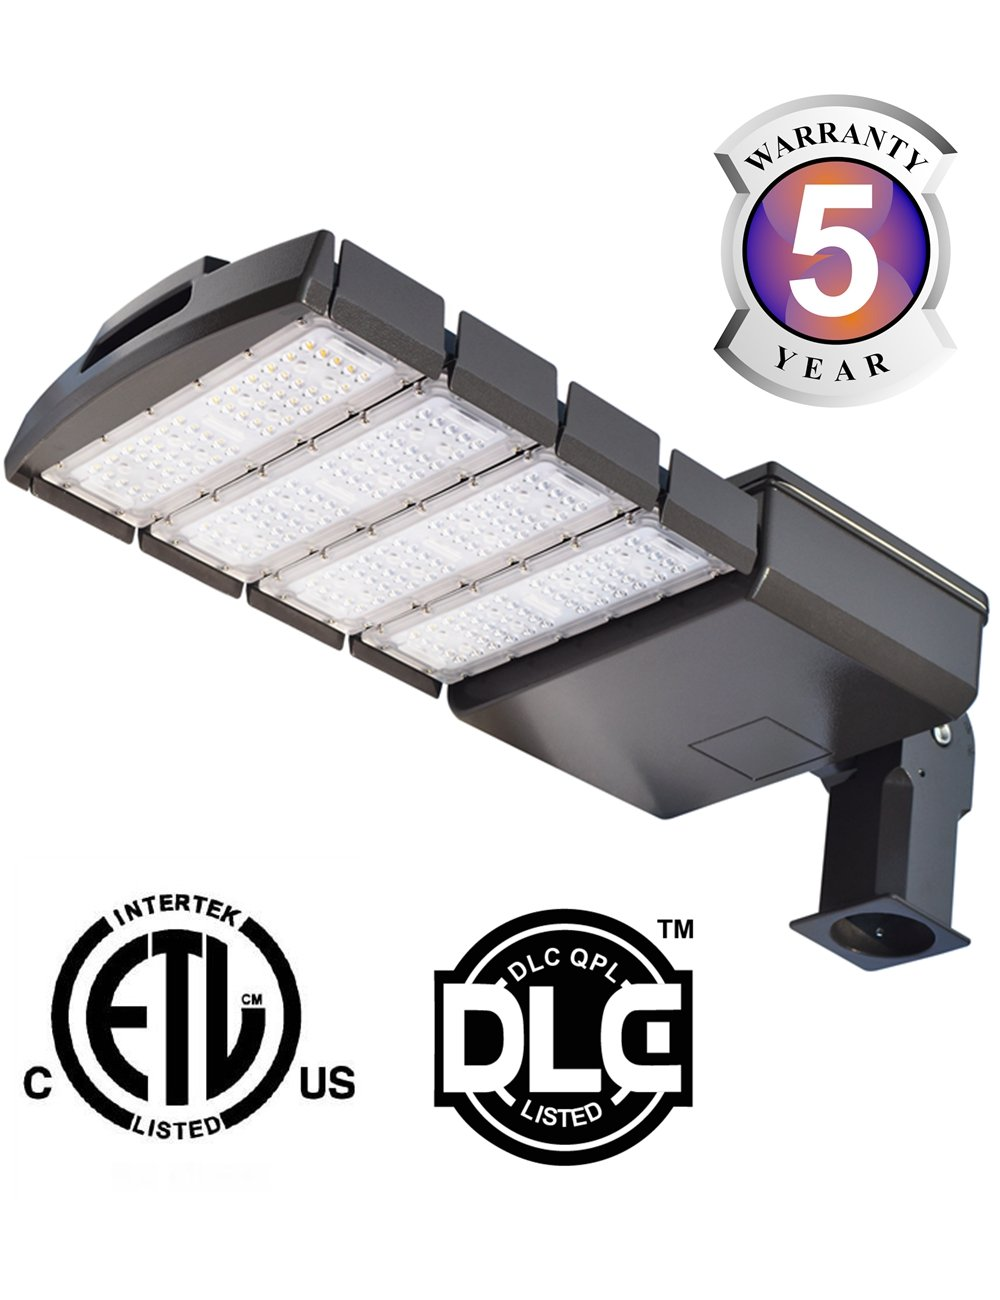 Docheer 22000 Lumen - 200W LED Shoebox Pole Light LED Parking Lot Area Lighting Fixture - Outdoor Commercial Waterproof Security Lighting - Street Road Light- Slip Fitter Mount, Daylight White 5300K